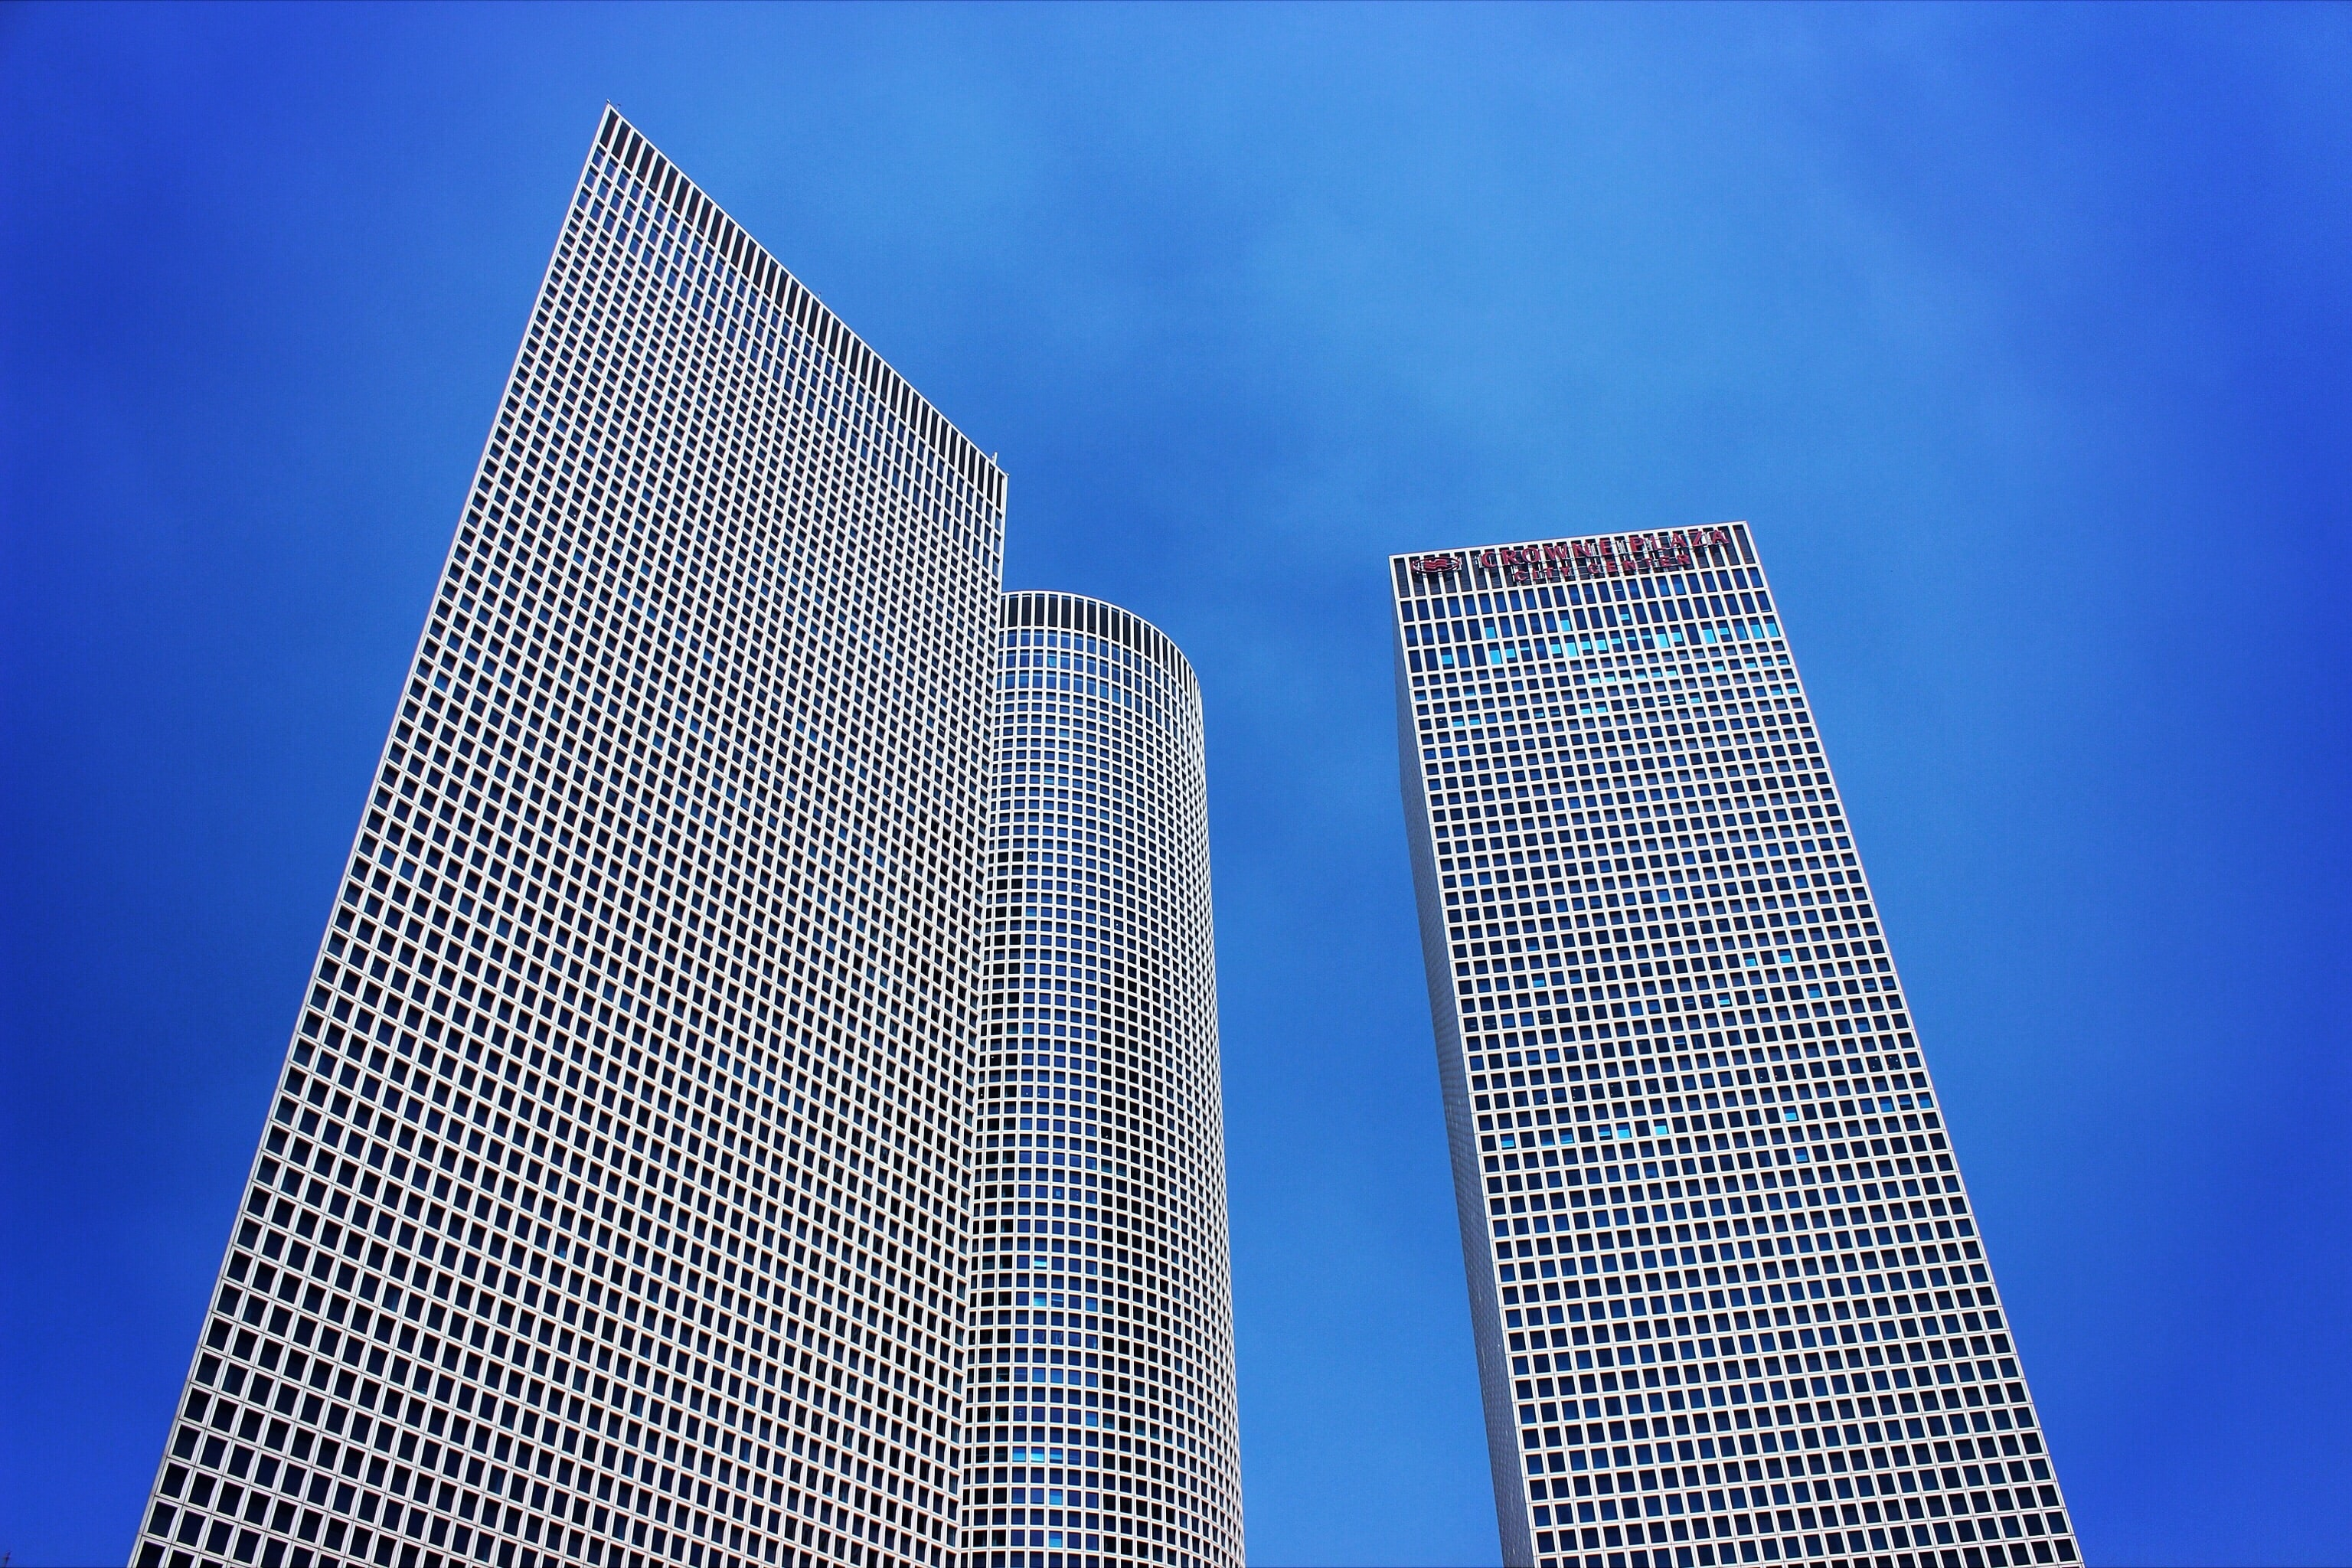 Shot of skyscraper towers with windows from below with clear blue sky